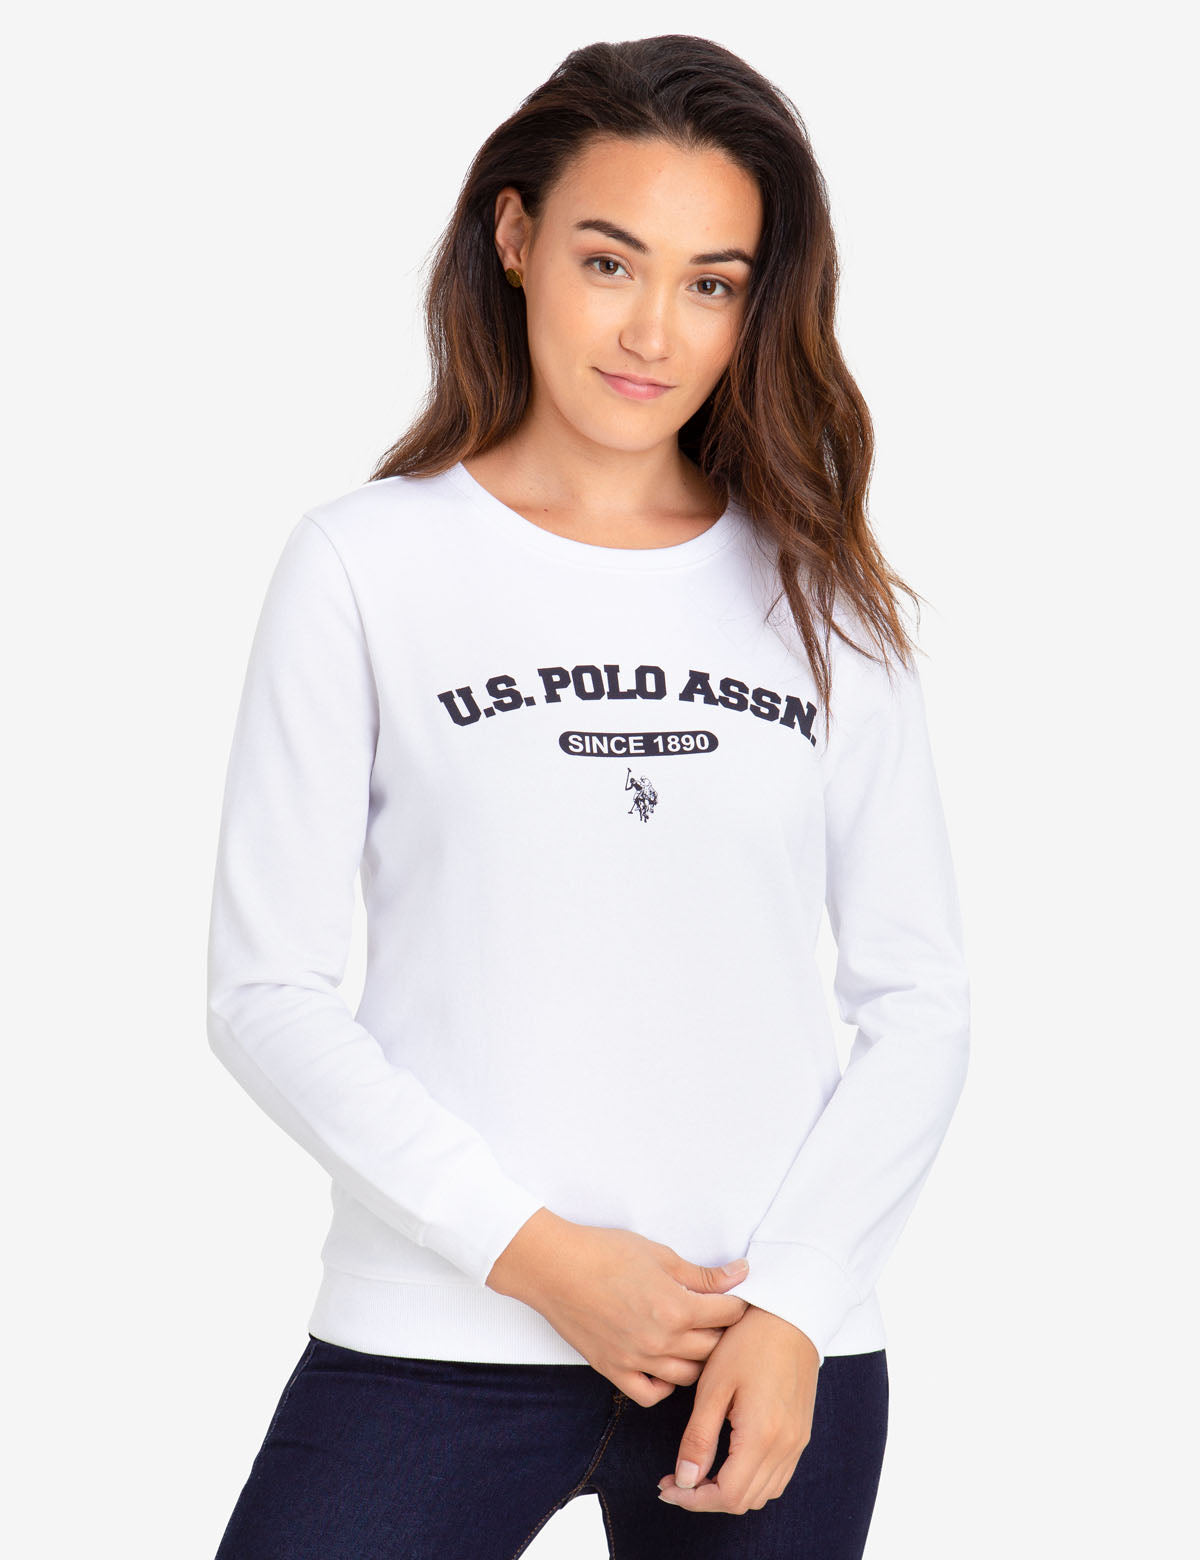 U.S. POLO ASSN. CREW NECK SWEATSHIRT